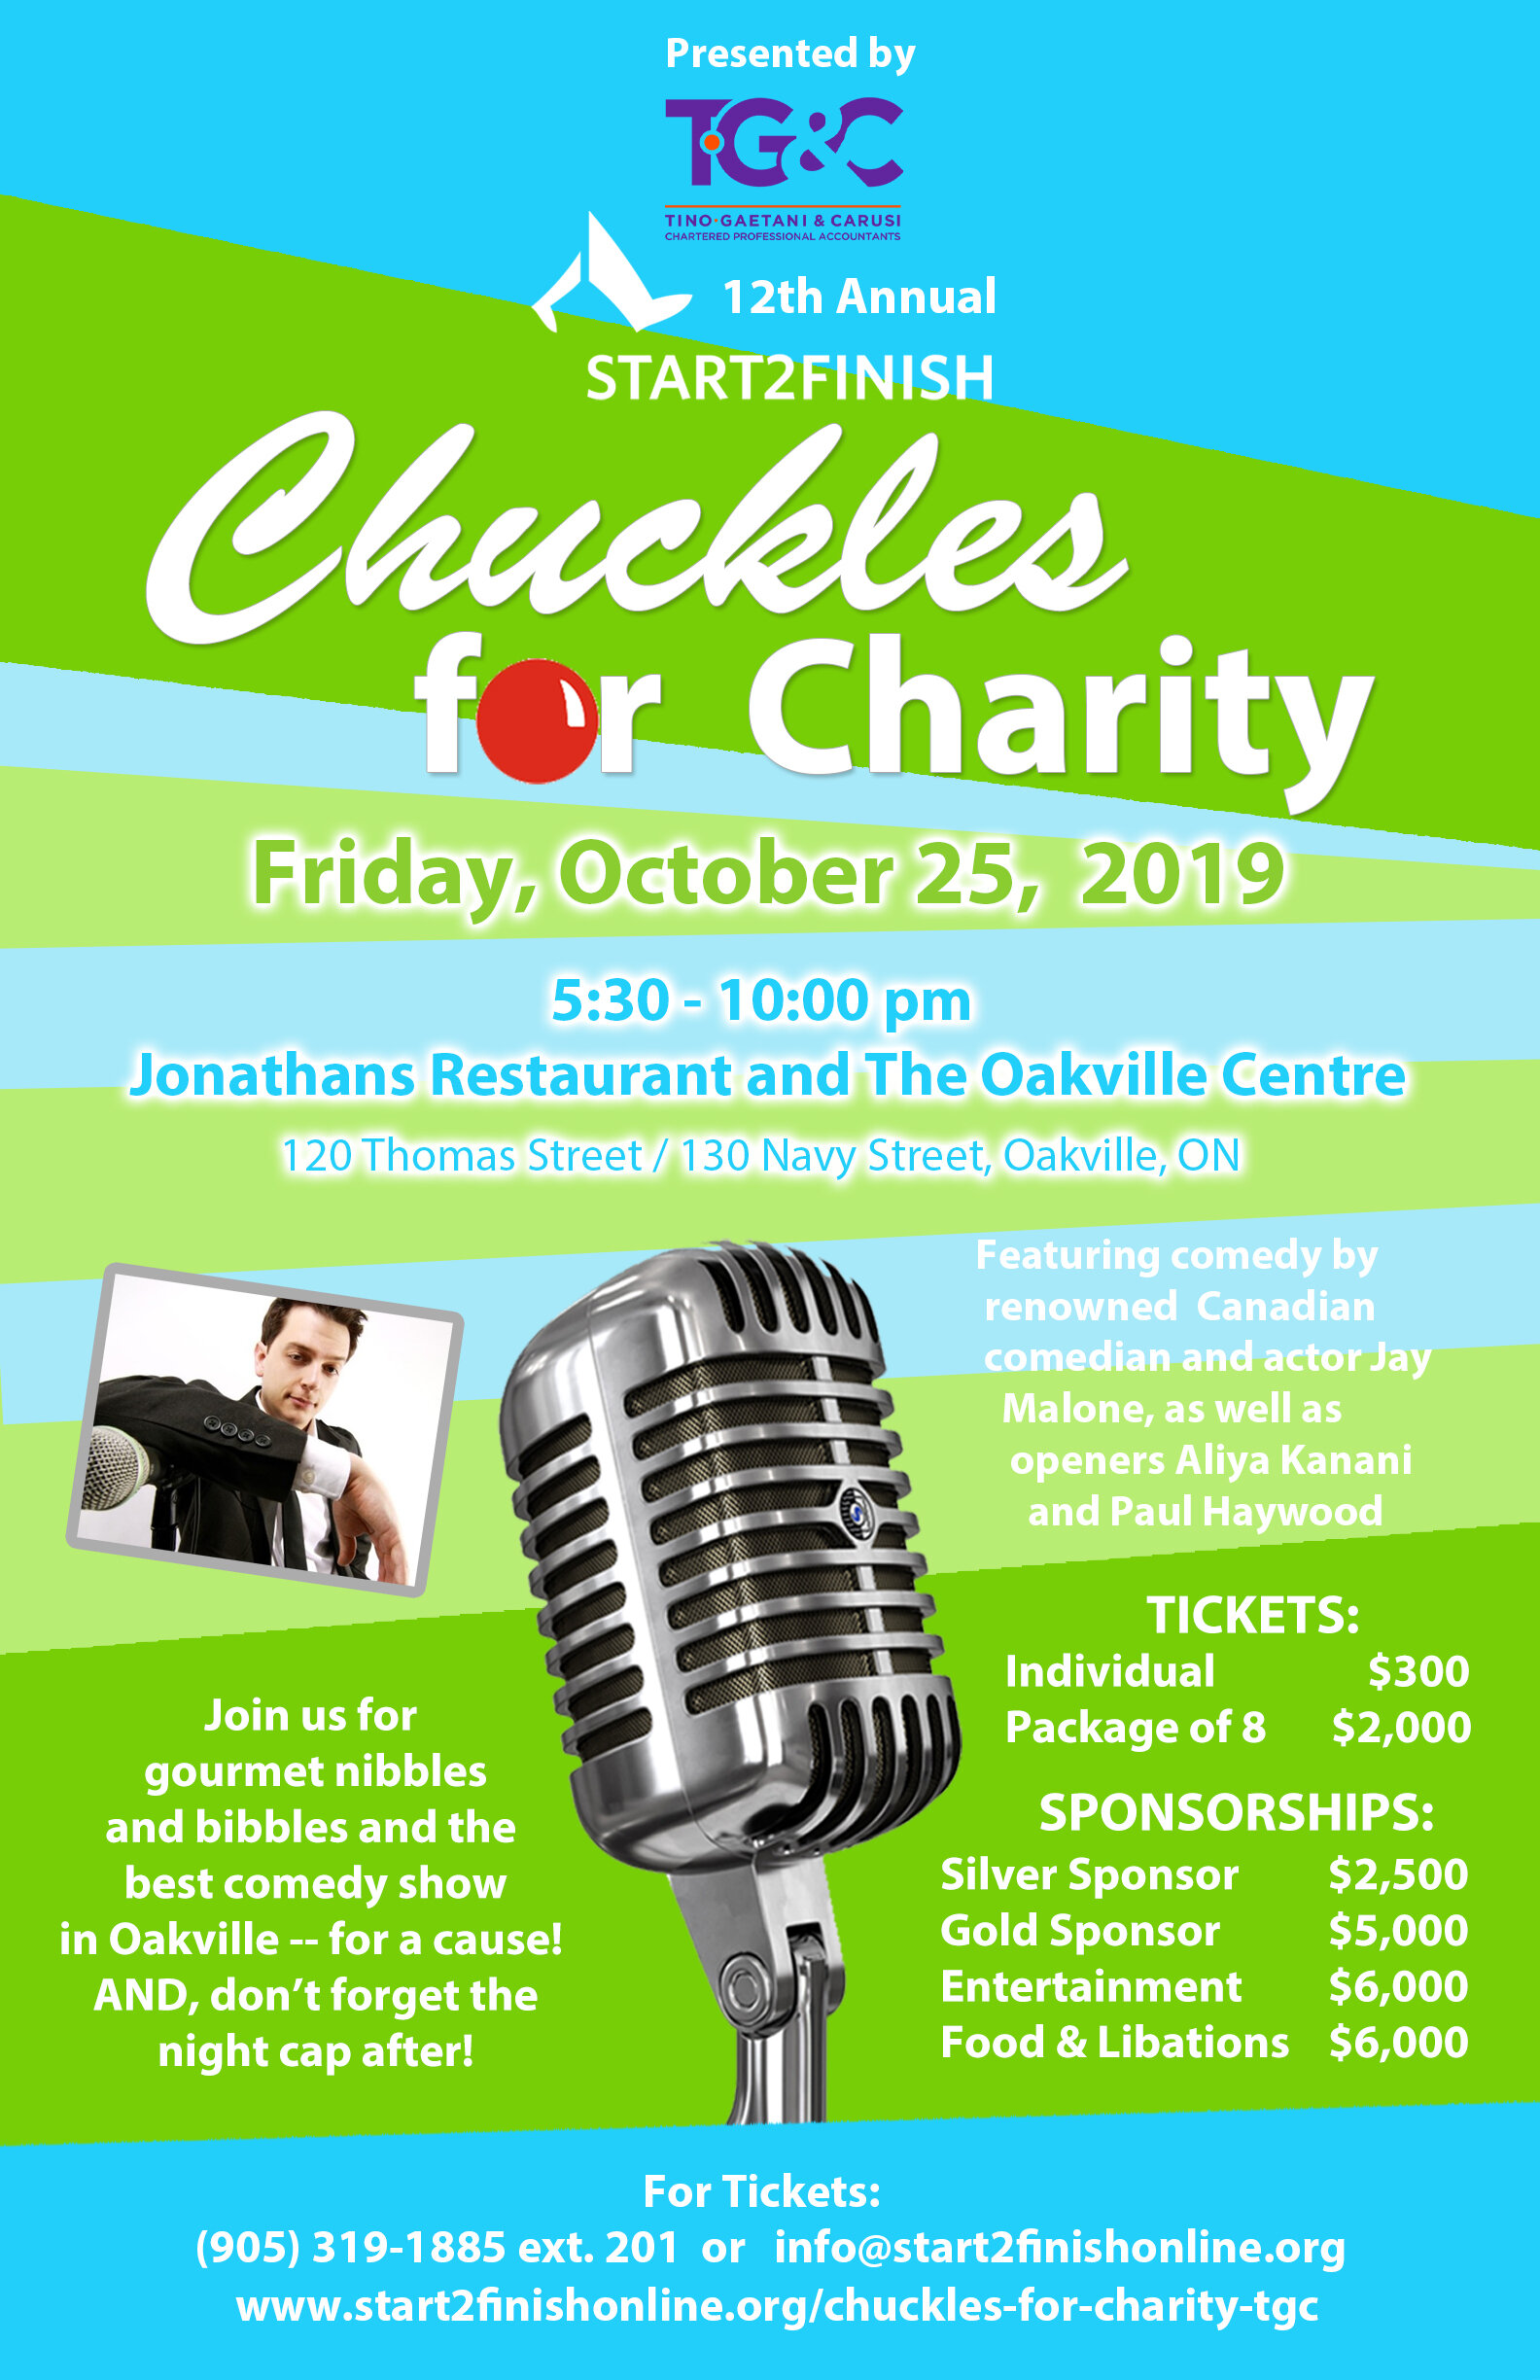 Flyer - S2F Chuckles for Charity 2019_TGC.jpg